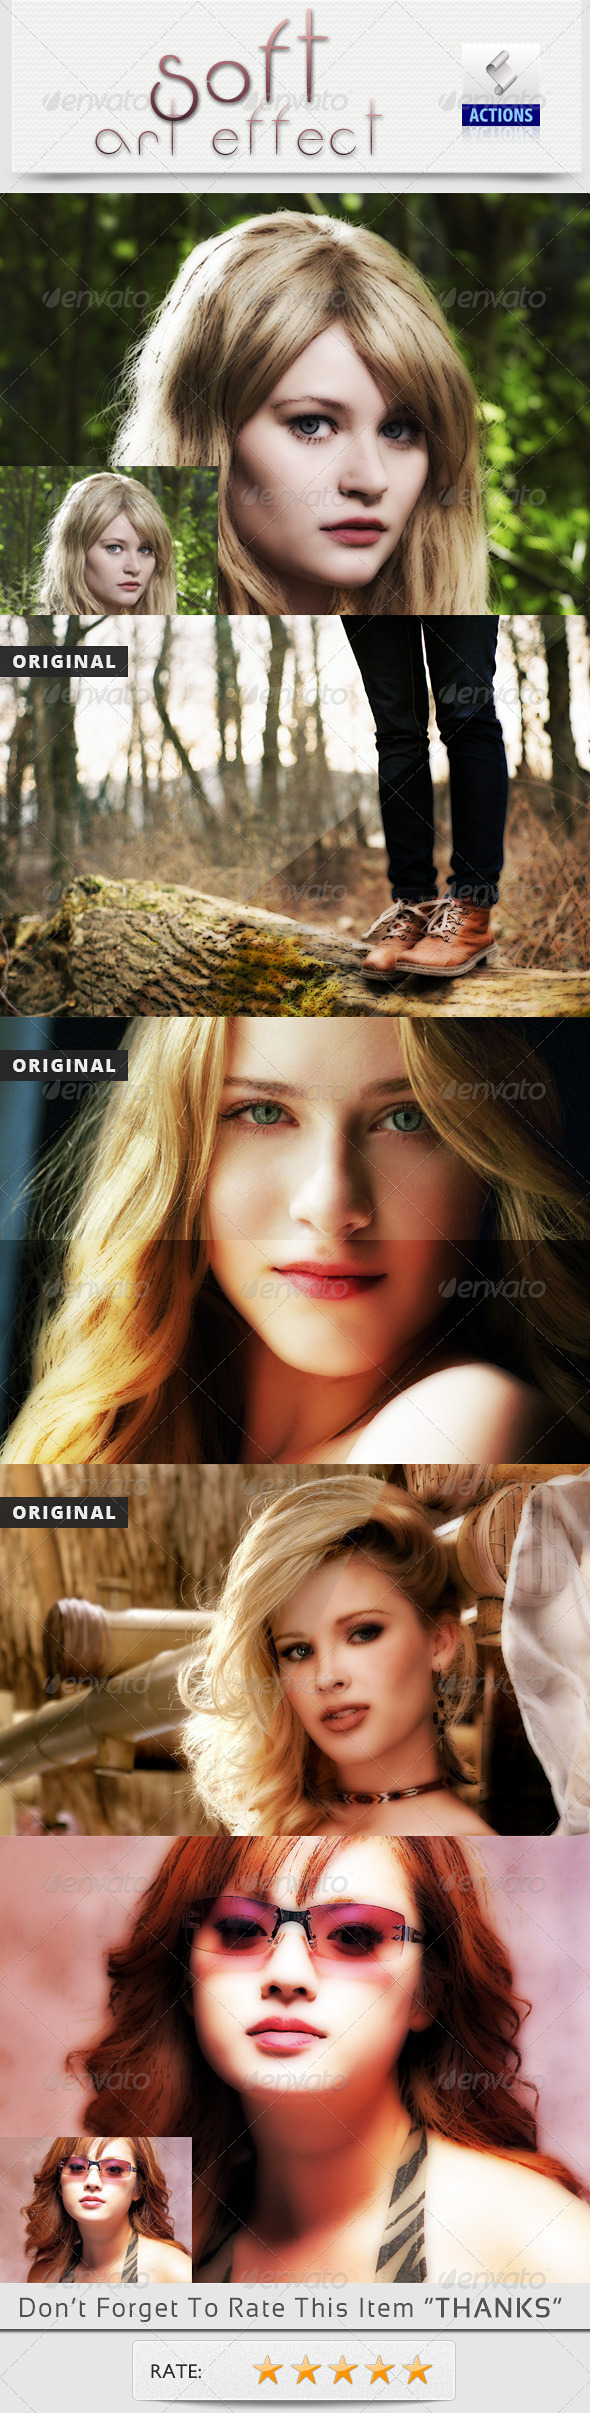 GraphicRiver Soft Art Effect 8765422